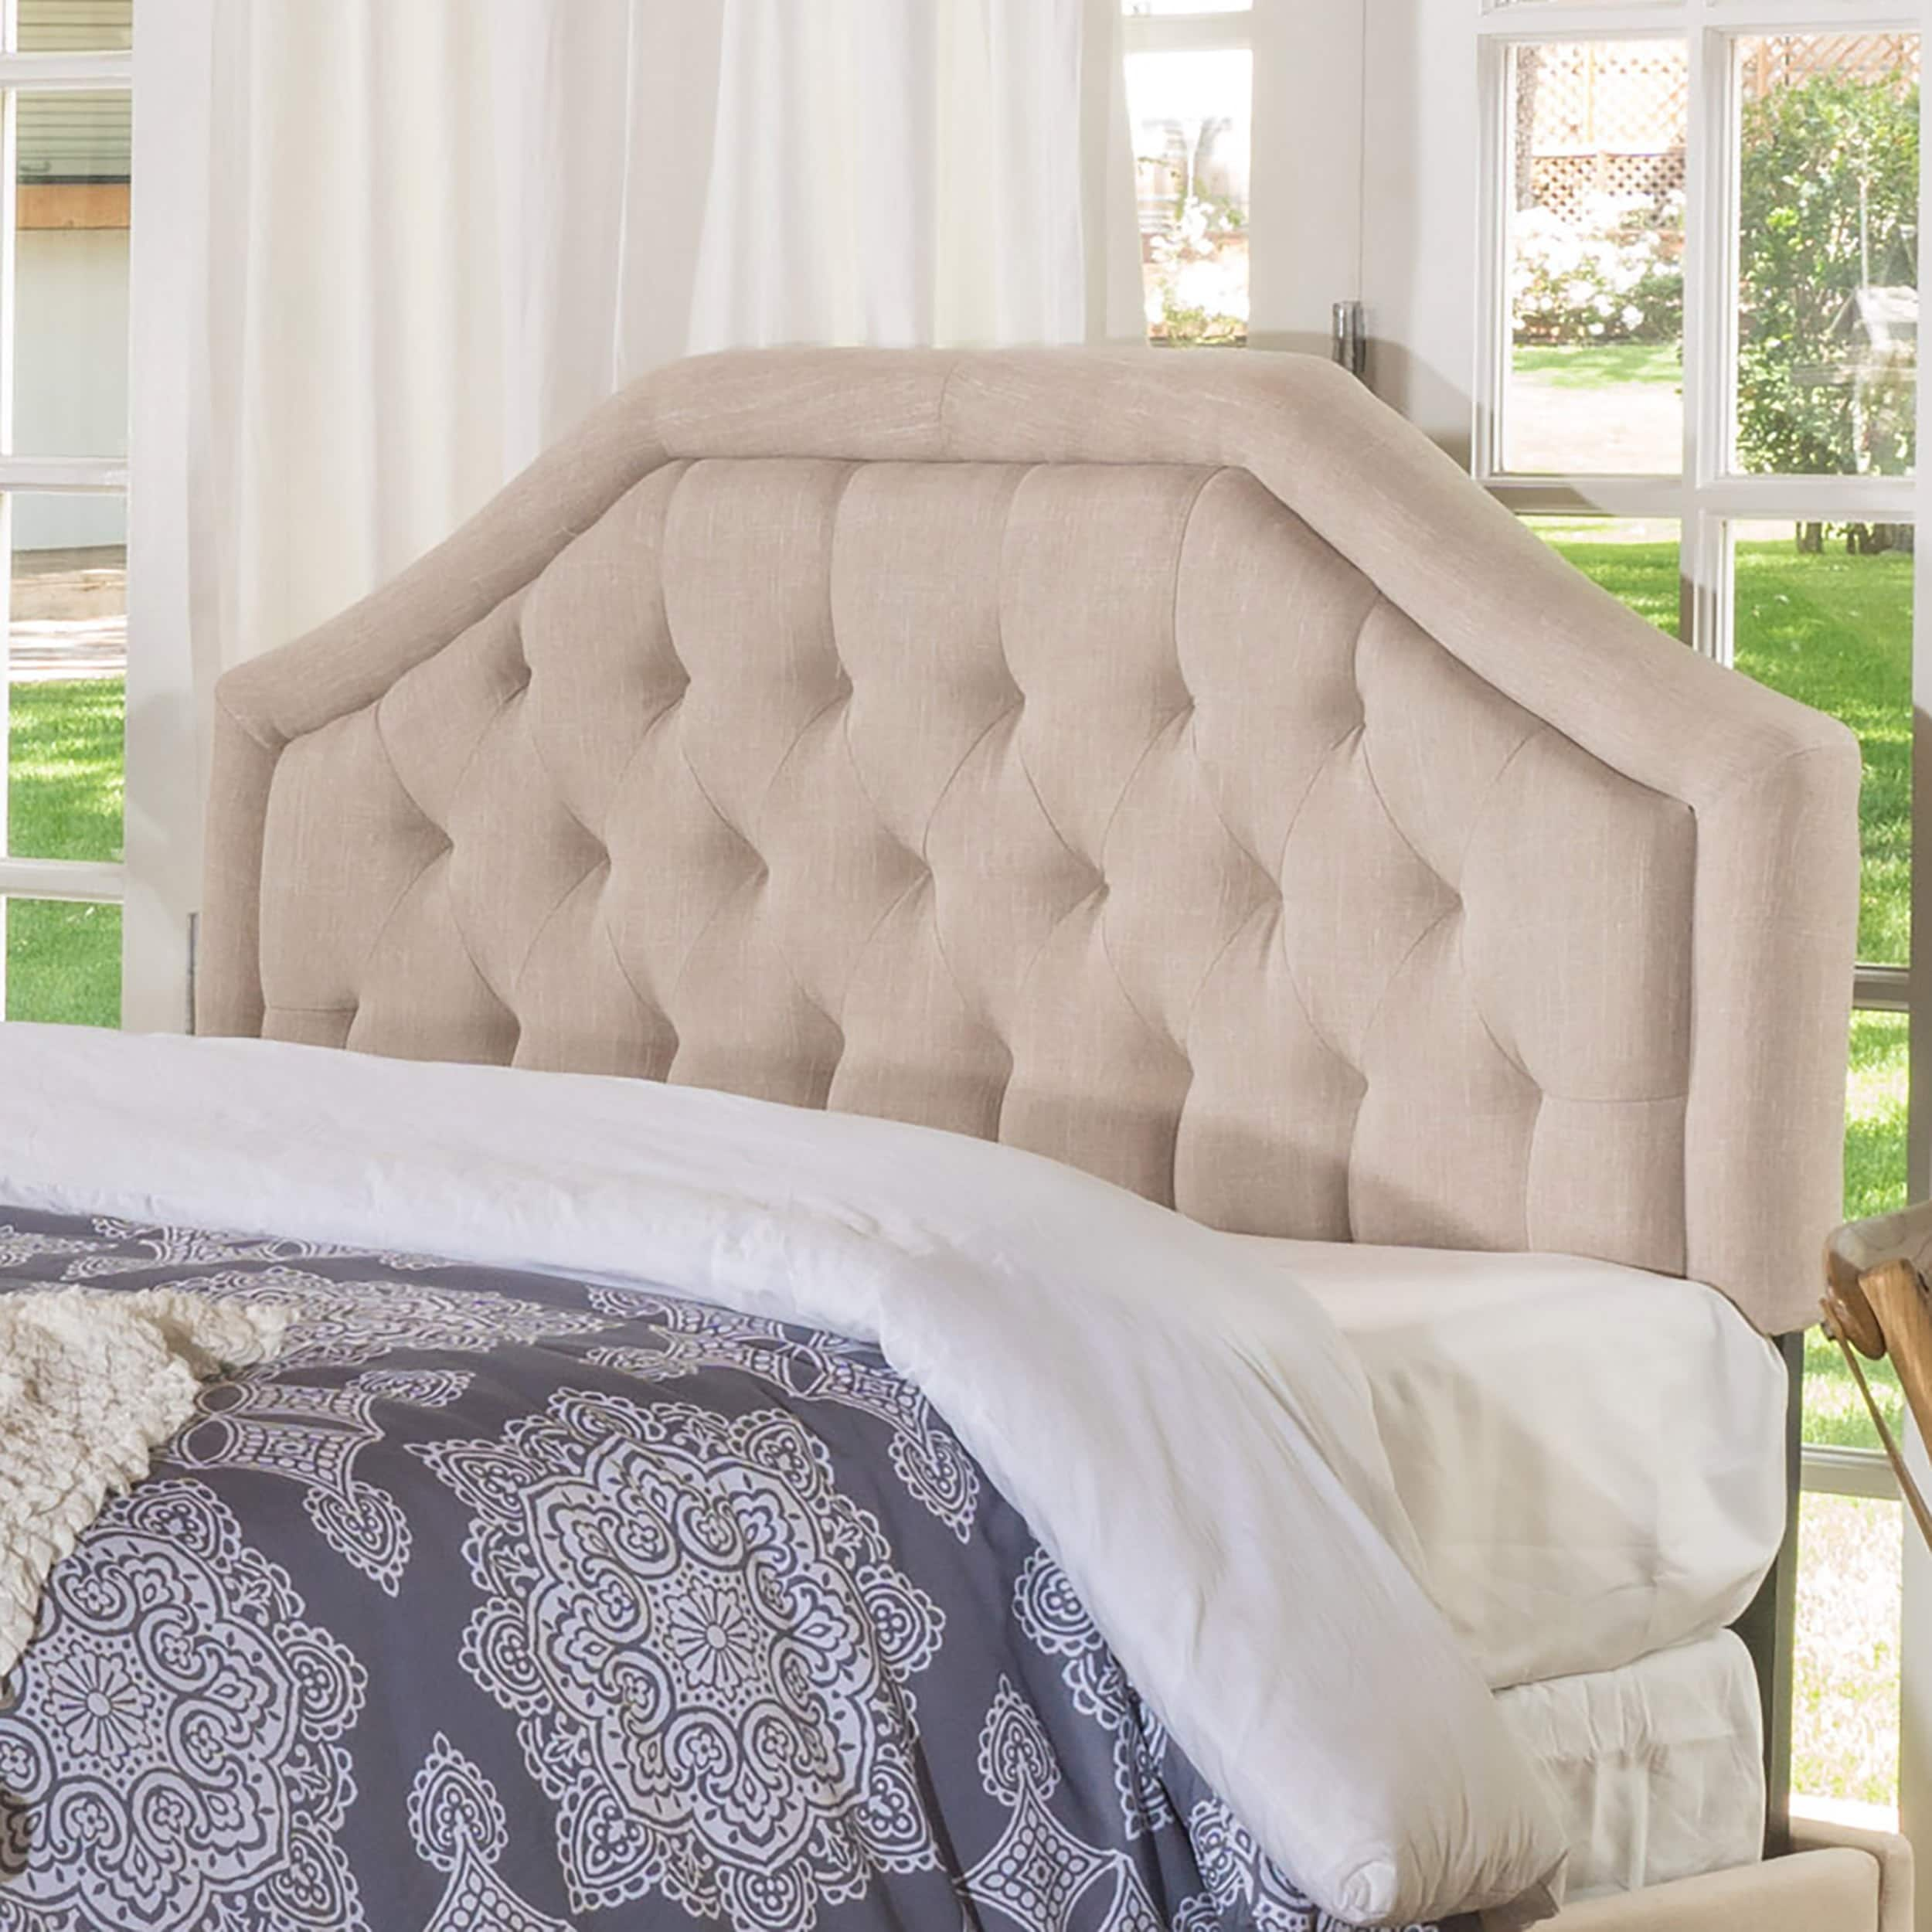 padded bei fabric annabel queen mod headboard